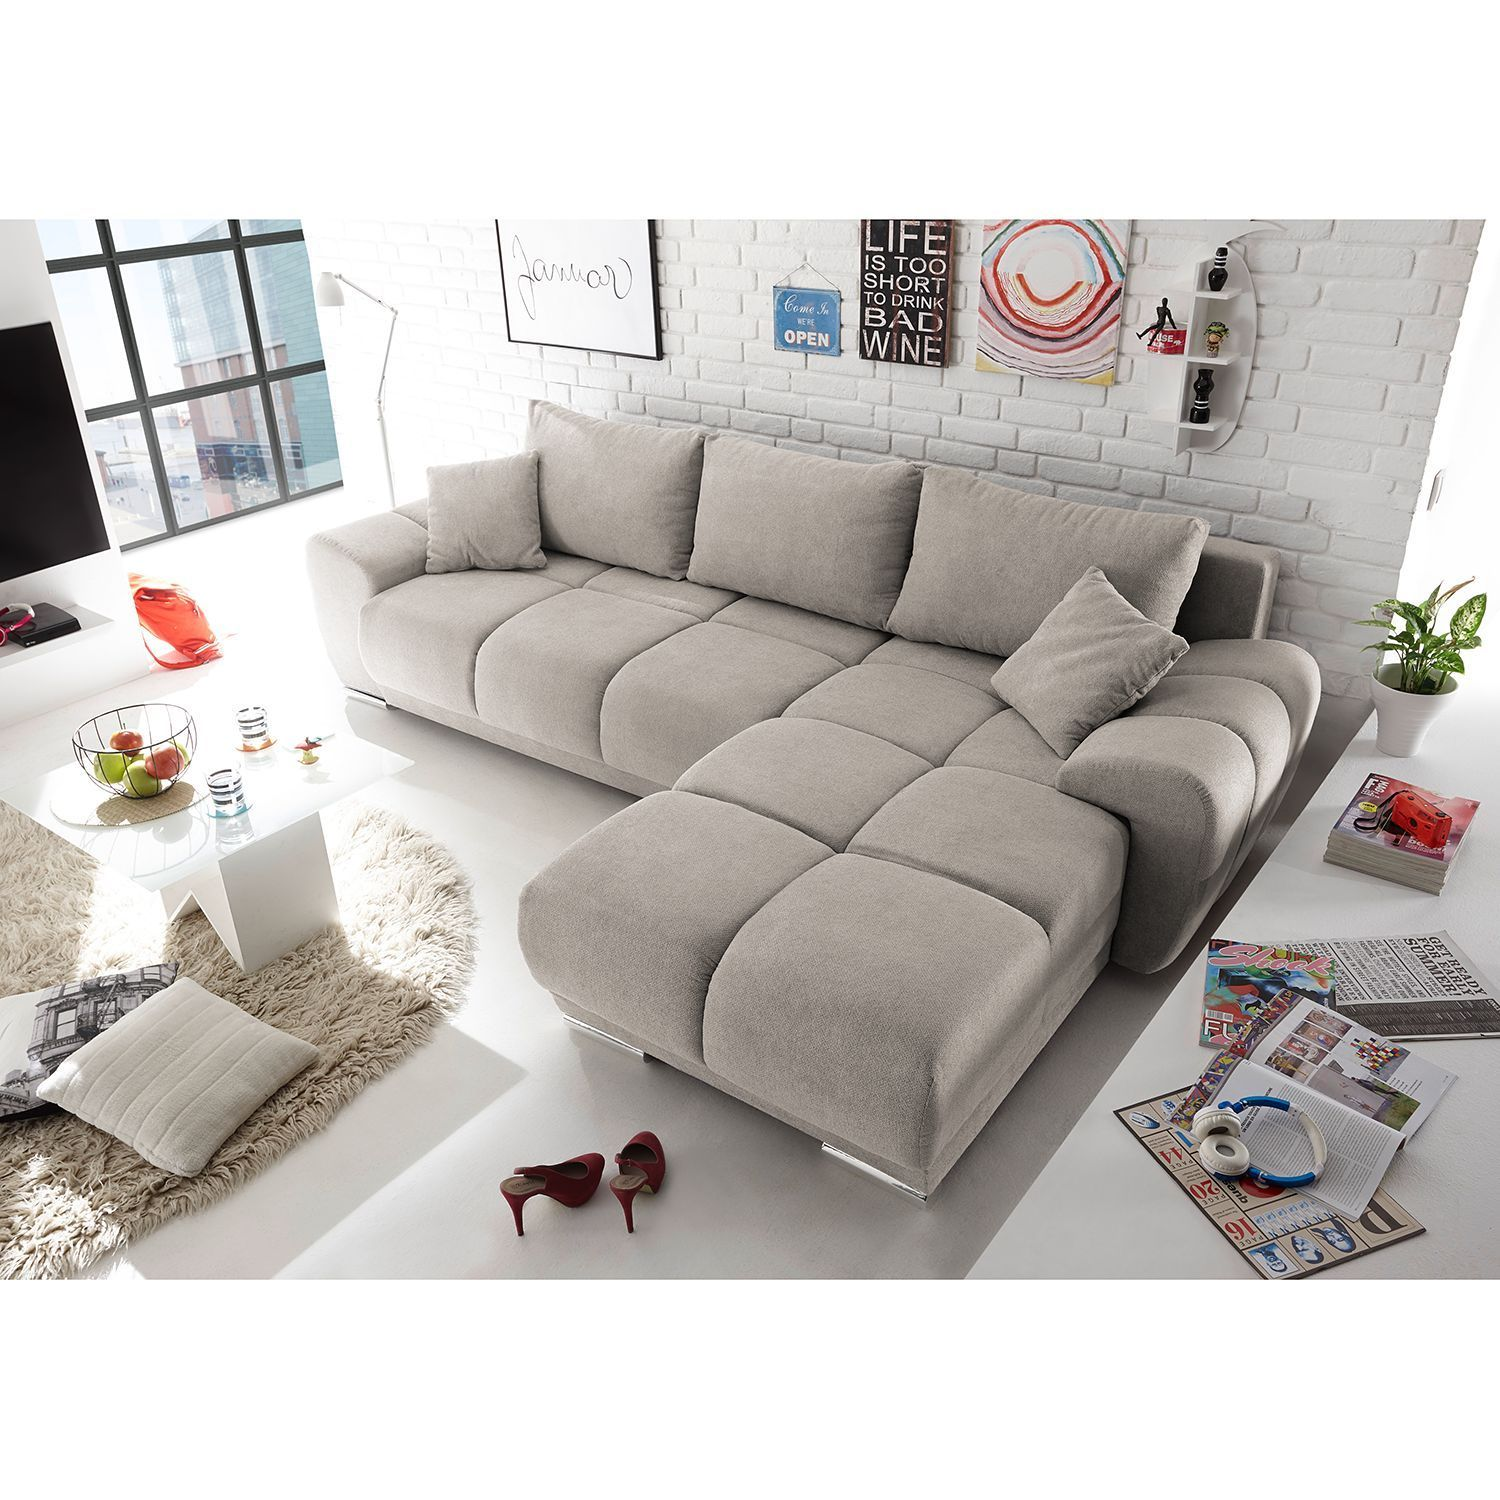 Westwell Corner Sofa With Sleeping Function In 2020 Corner Sofa Living Room Designs Couch